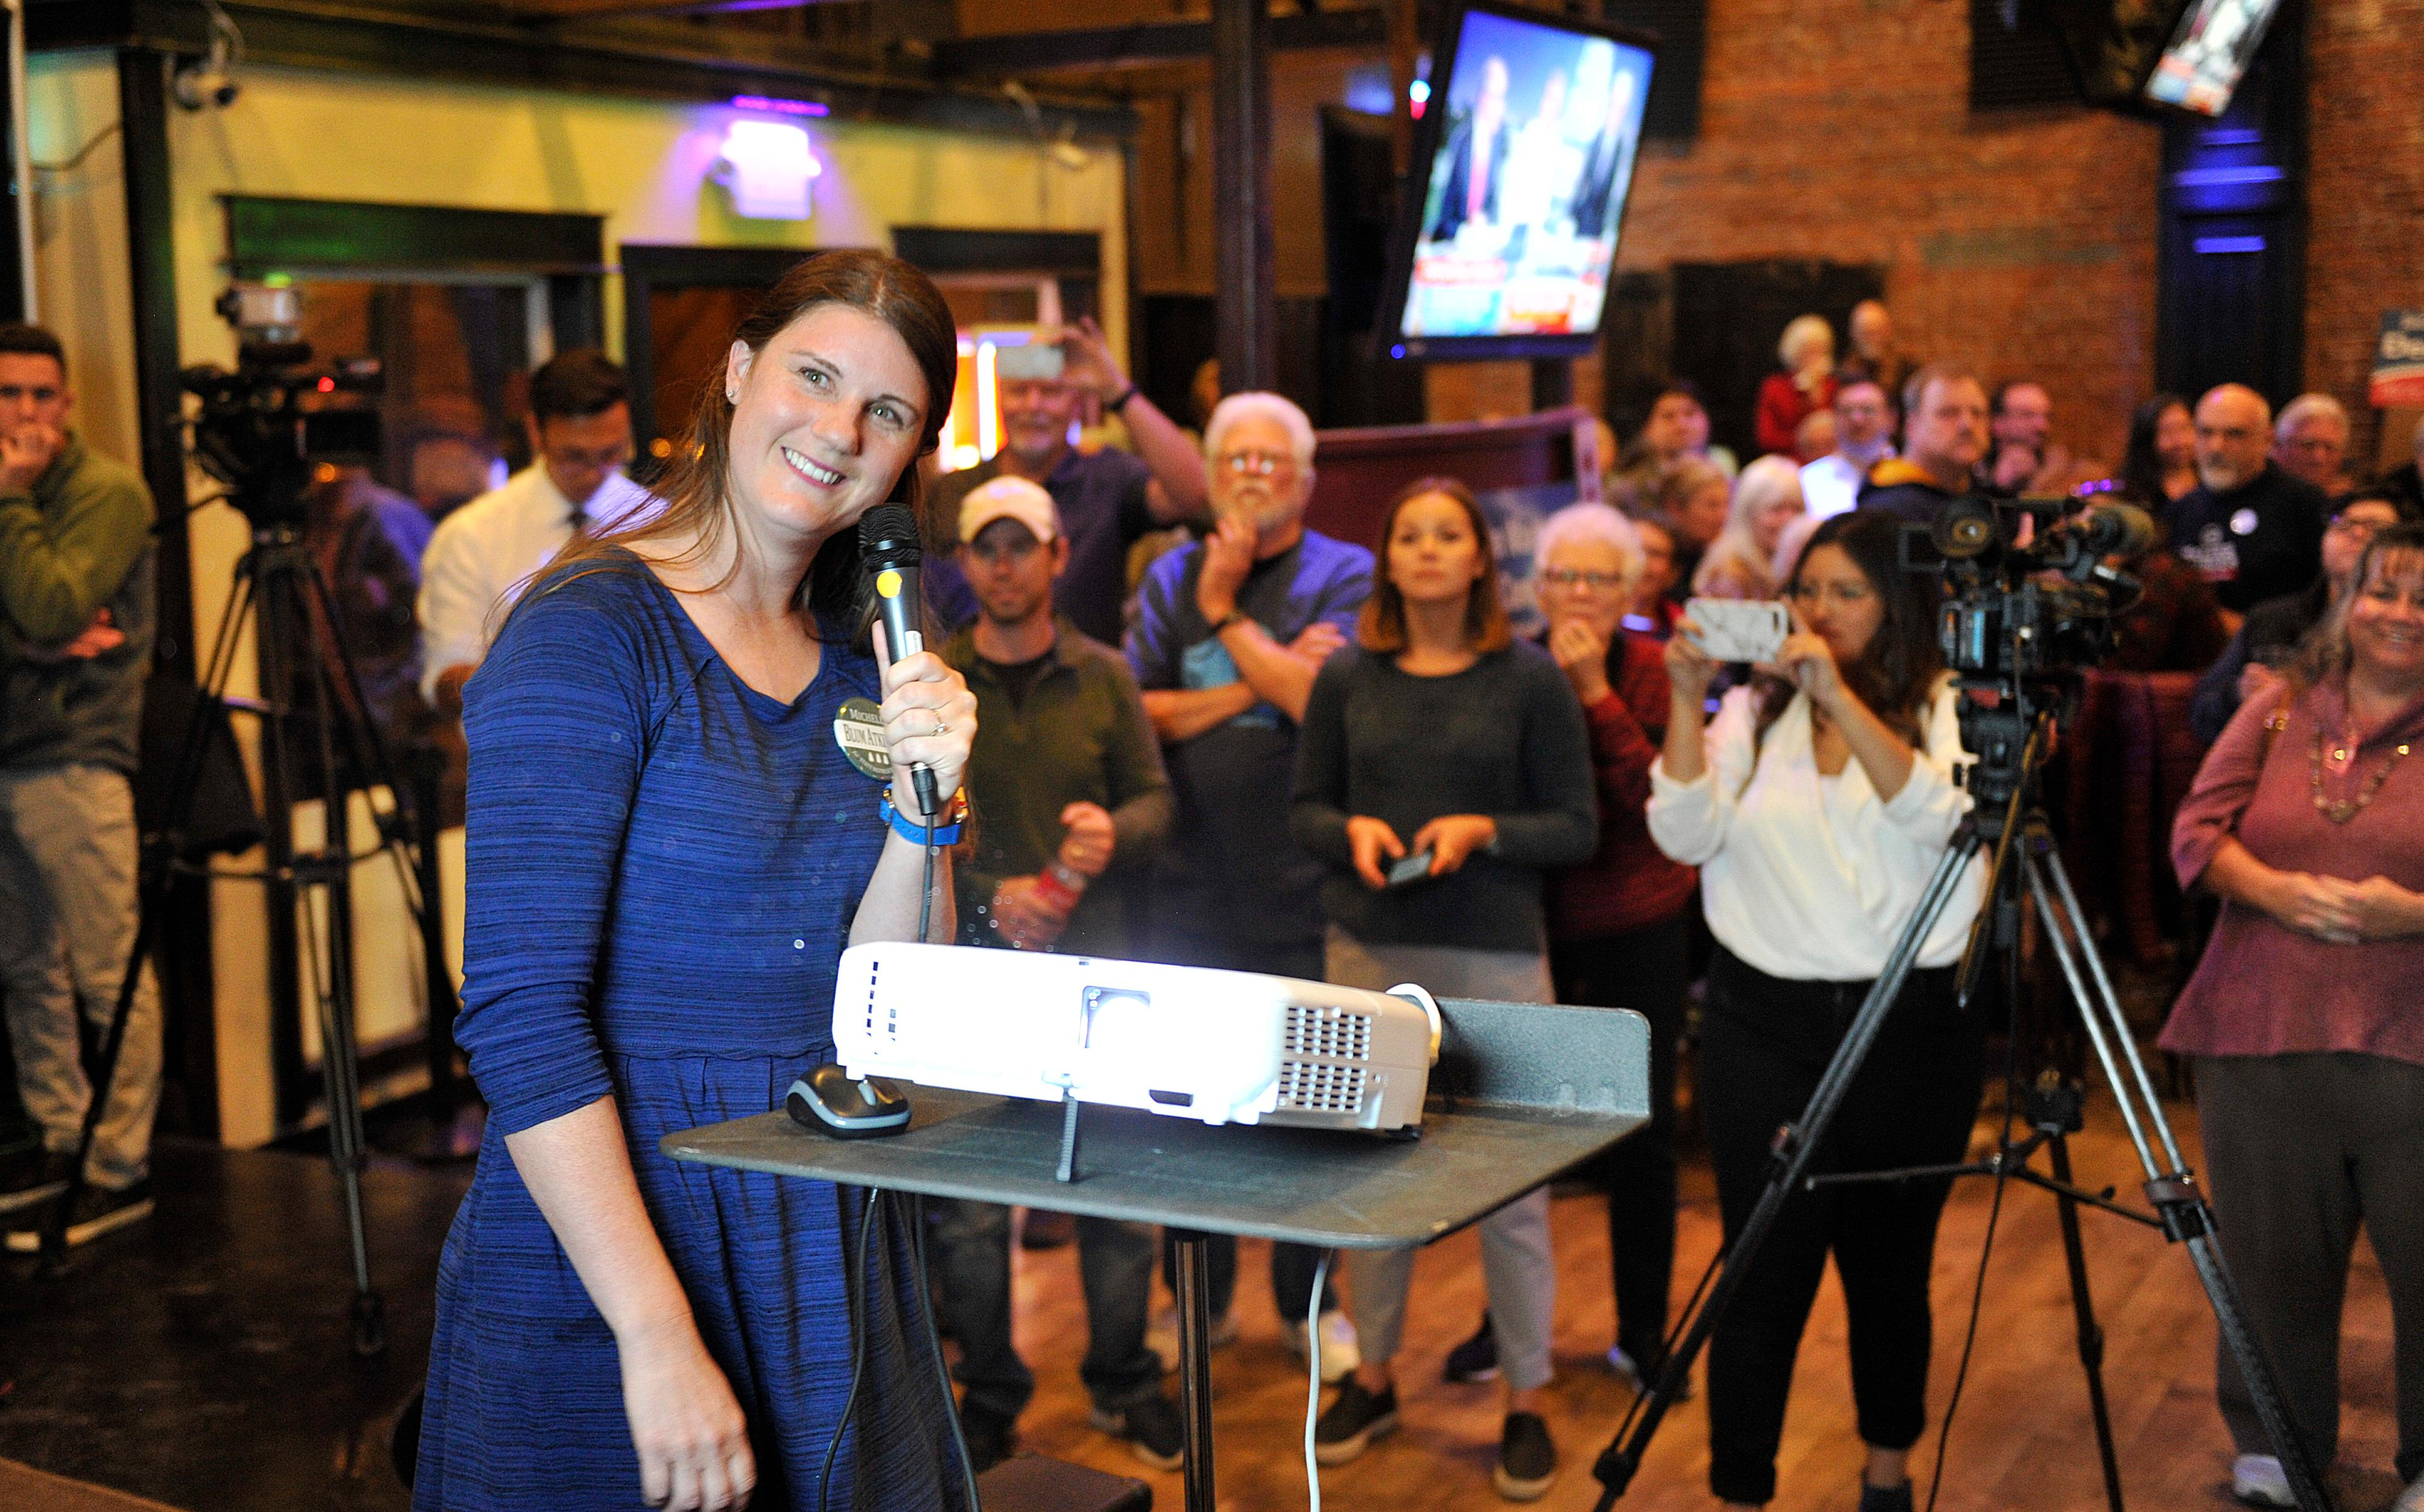 Michelle Blum Atkinson reacts after reading the first round of ballot for Oregon State Representative District 6 at the Grape Street Bar and Grill in Medford. Jamie Lusch / Mail Tribune